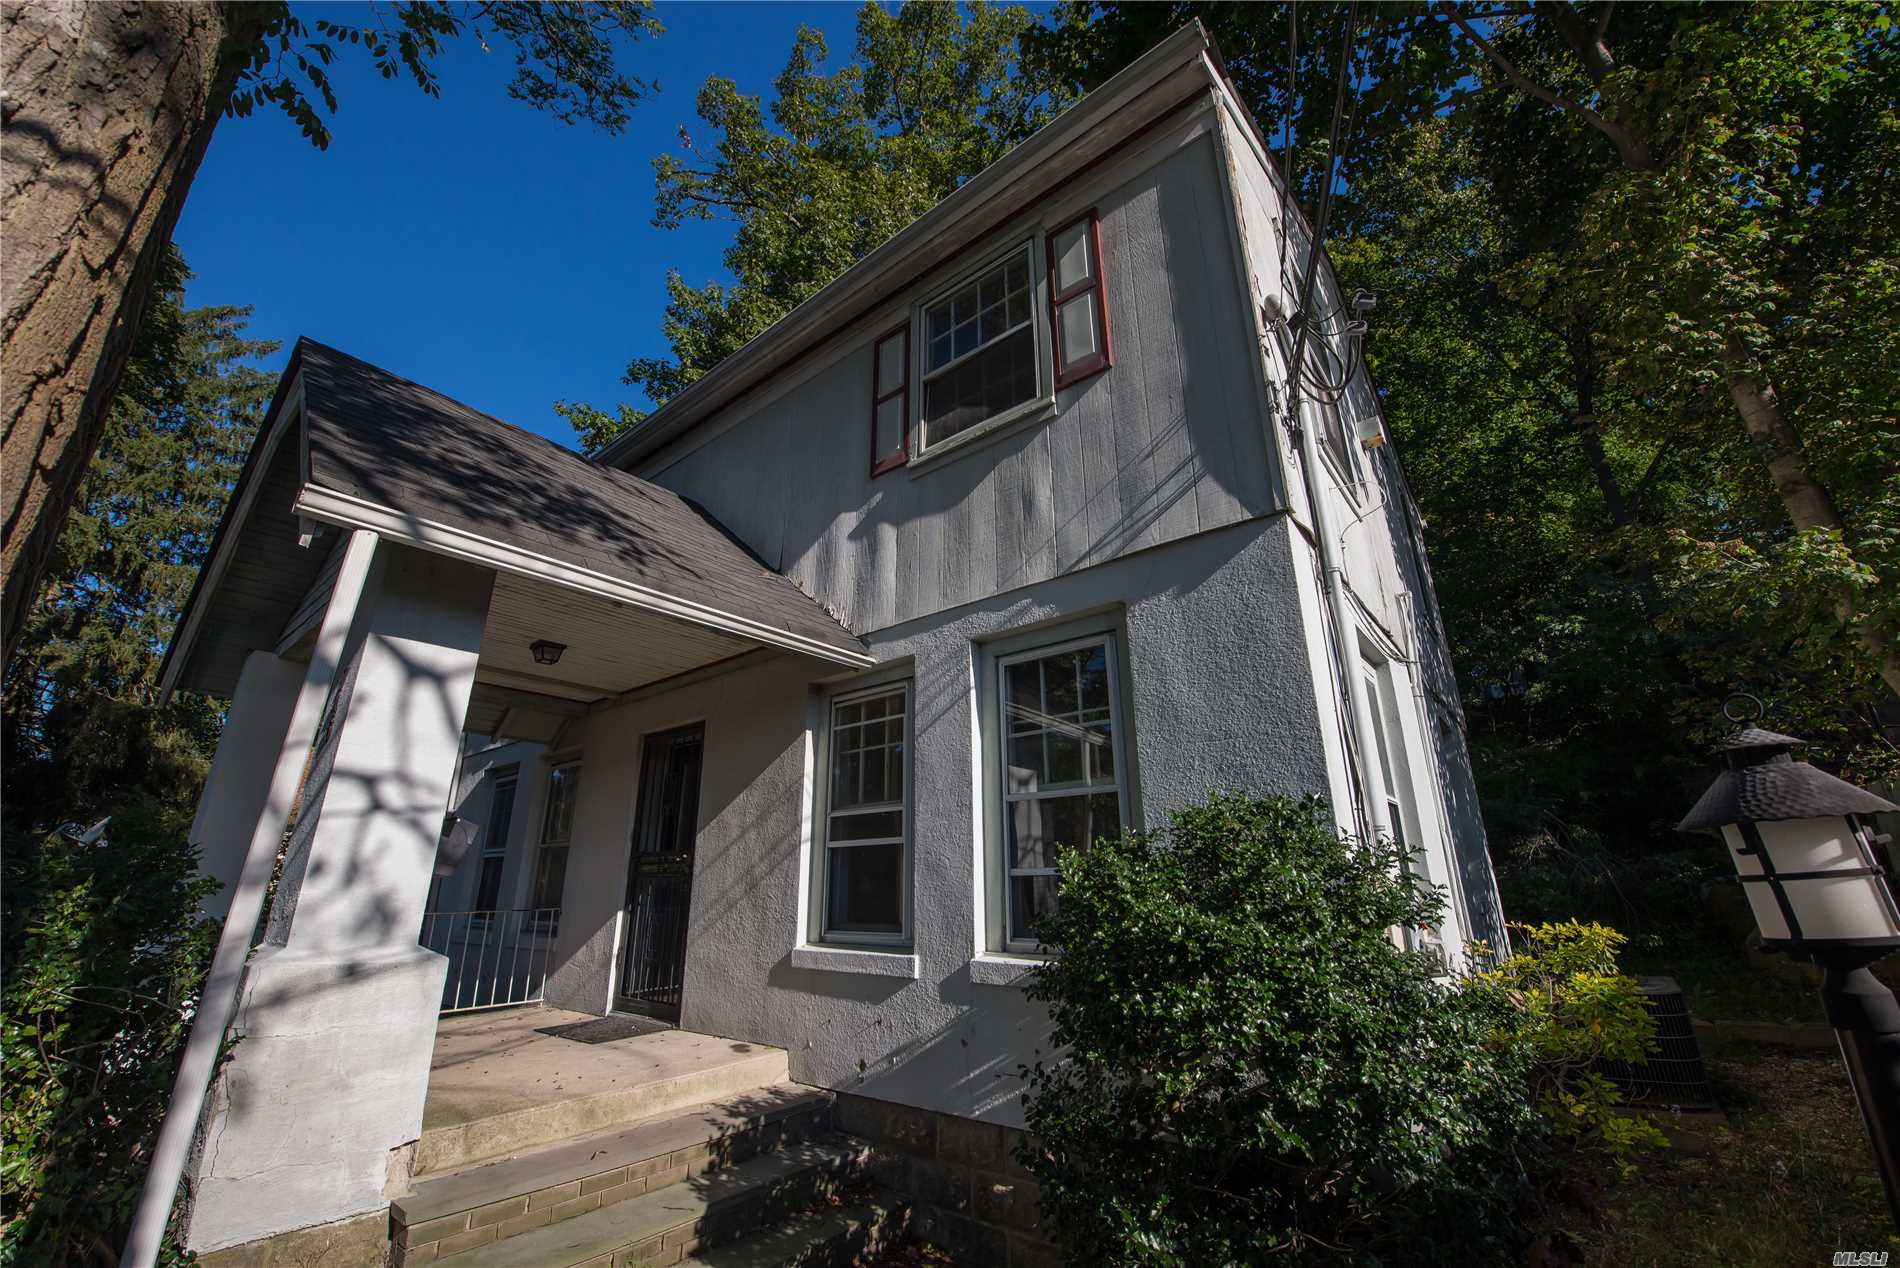 Excellent Location For This Property For Investor For Excellent Rental Income Or Professional Office Building. C-6 Zoned. Property Is Walking Distance From Downtown Huntington. 3 Bedrooms 1.5 Half. Also Offered As A Residential Home Due To Current Usage As A Residential Property Grandfathered Usage In Indefinitely.